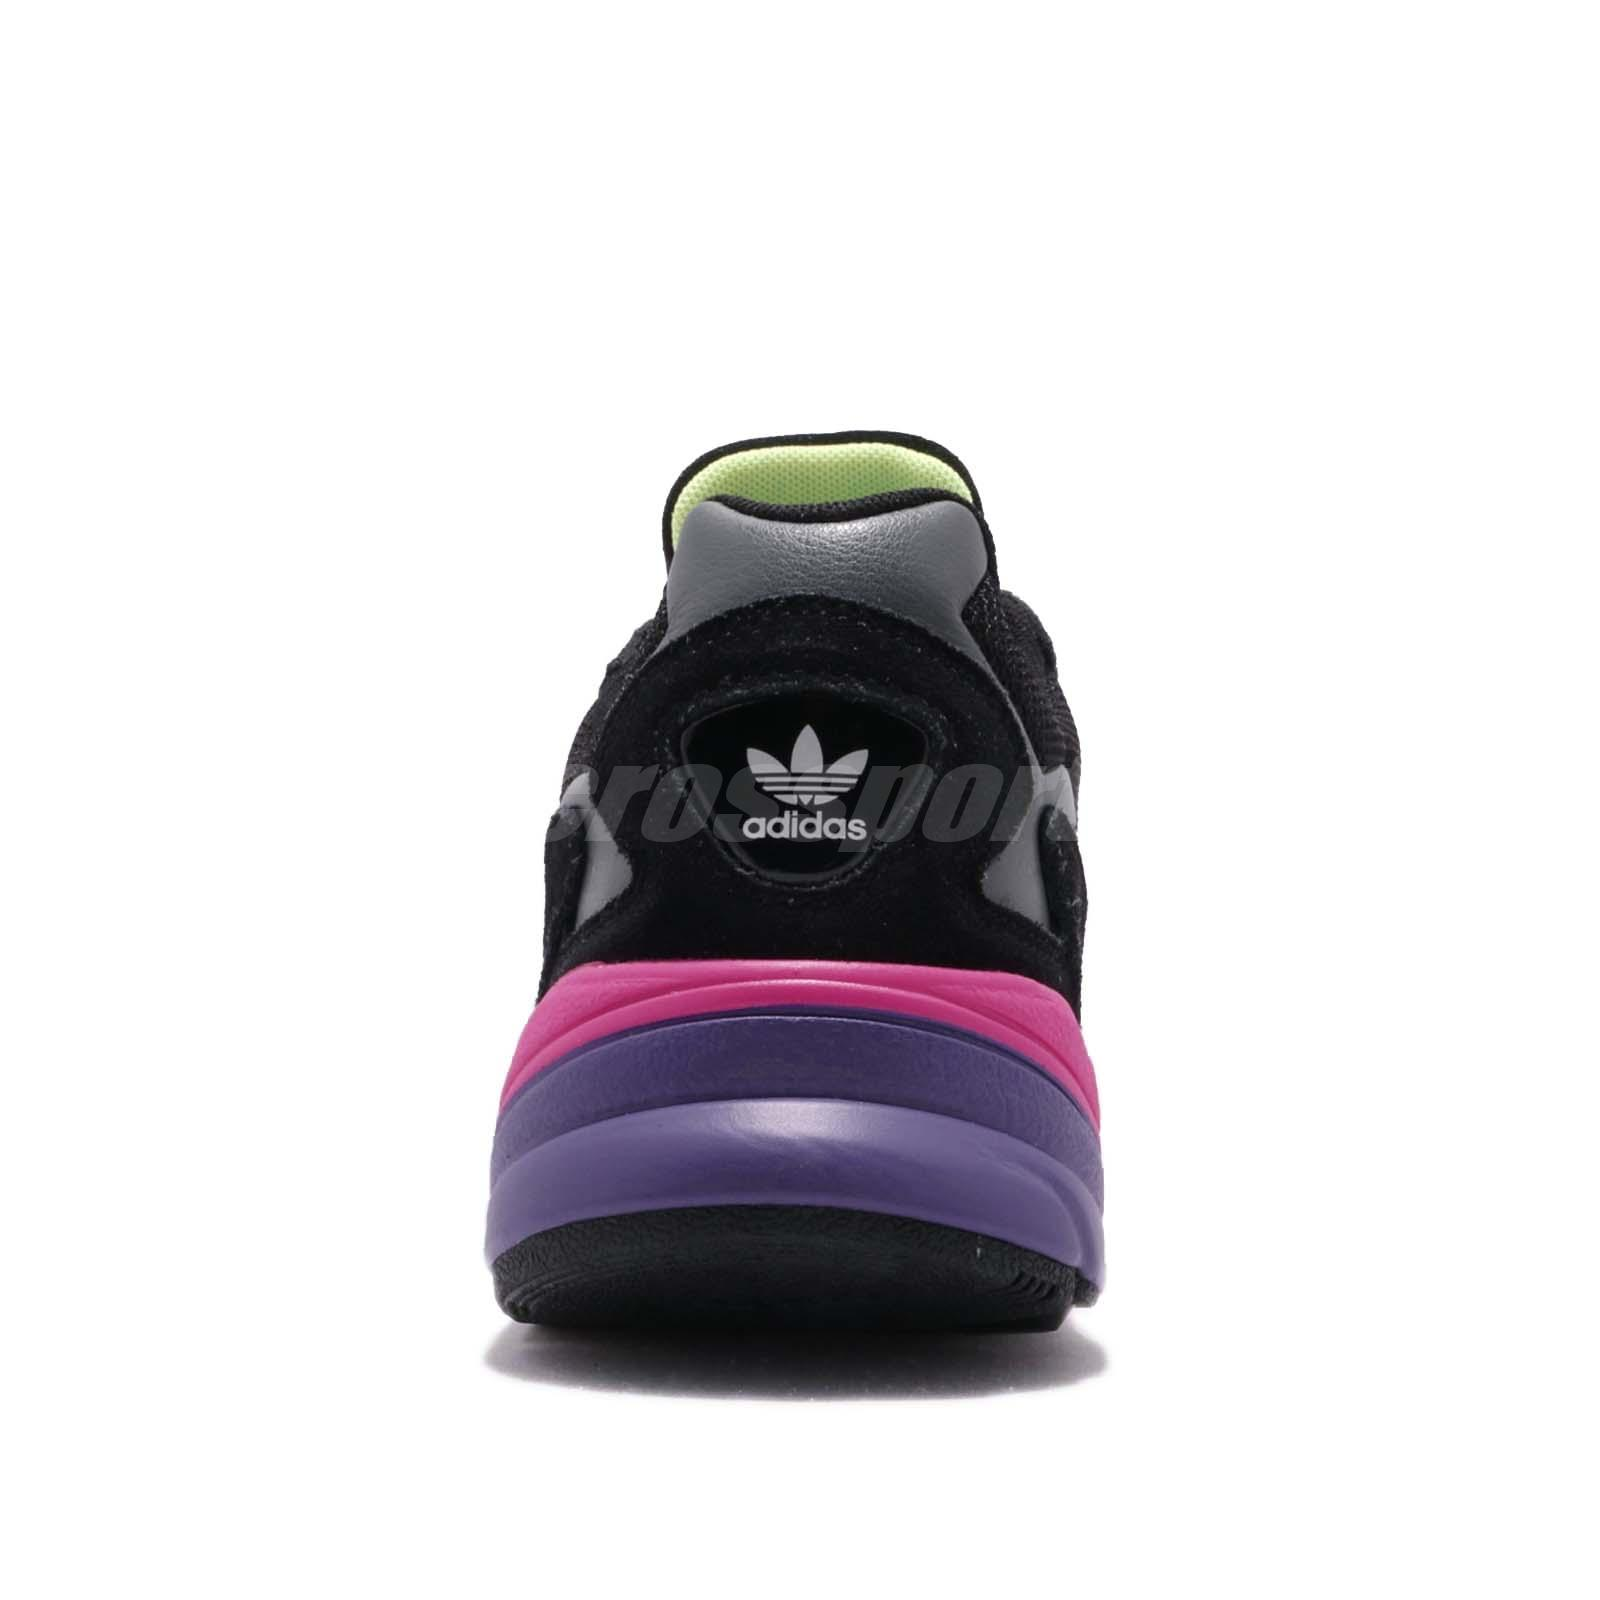 Details about adidas Originals Falcon W Black Shock Pink Purple Womens Running Shoes CG6219